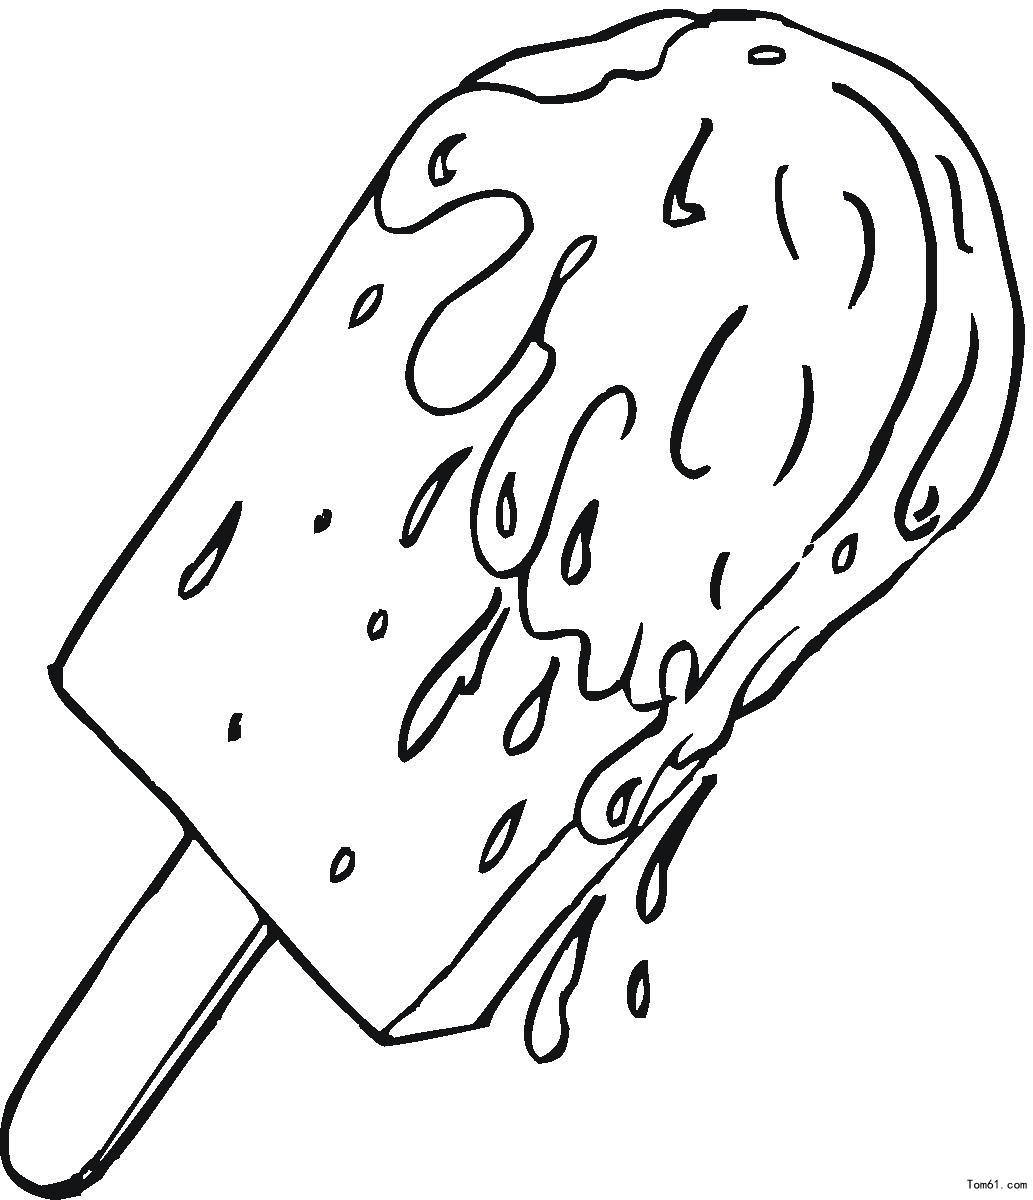 Learn Colors for Kids with this Ice Cream Popsicle Coloring Page 9